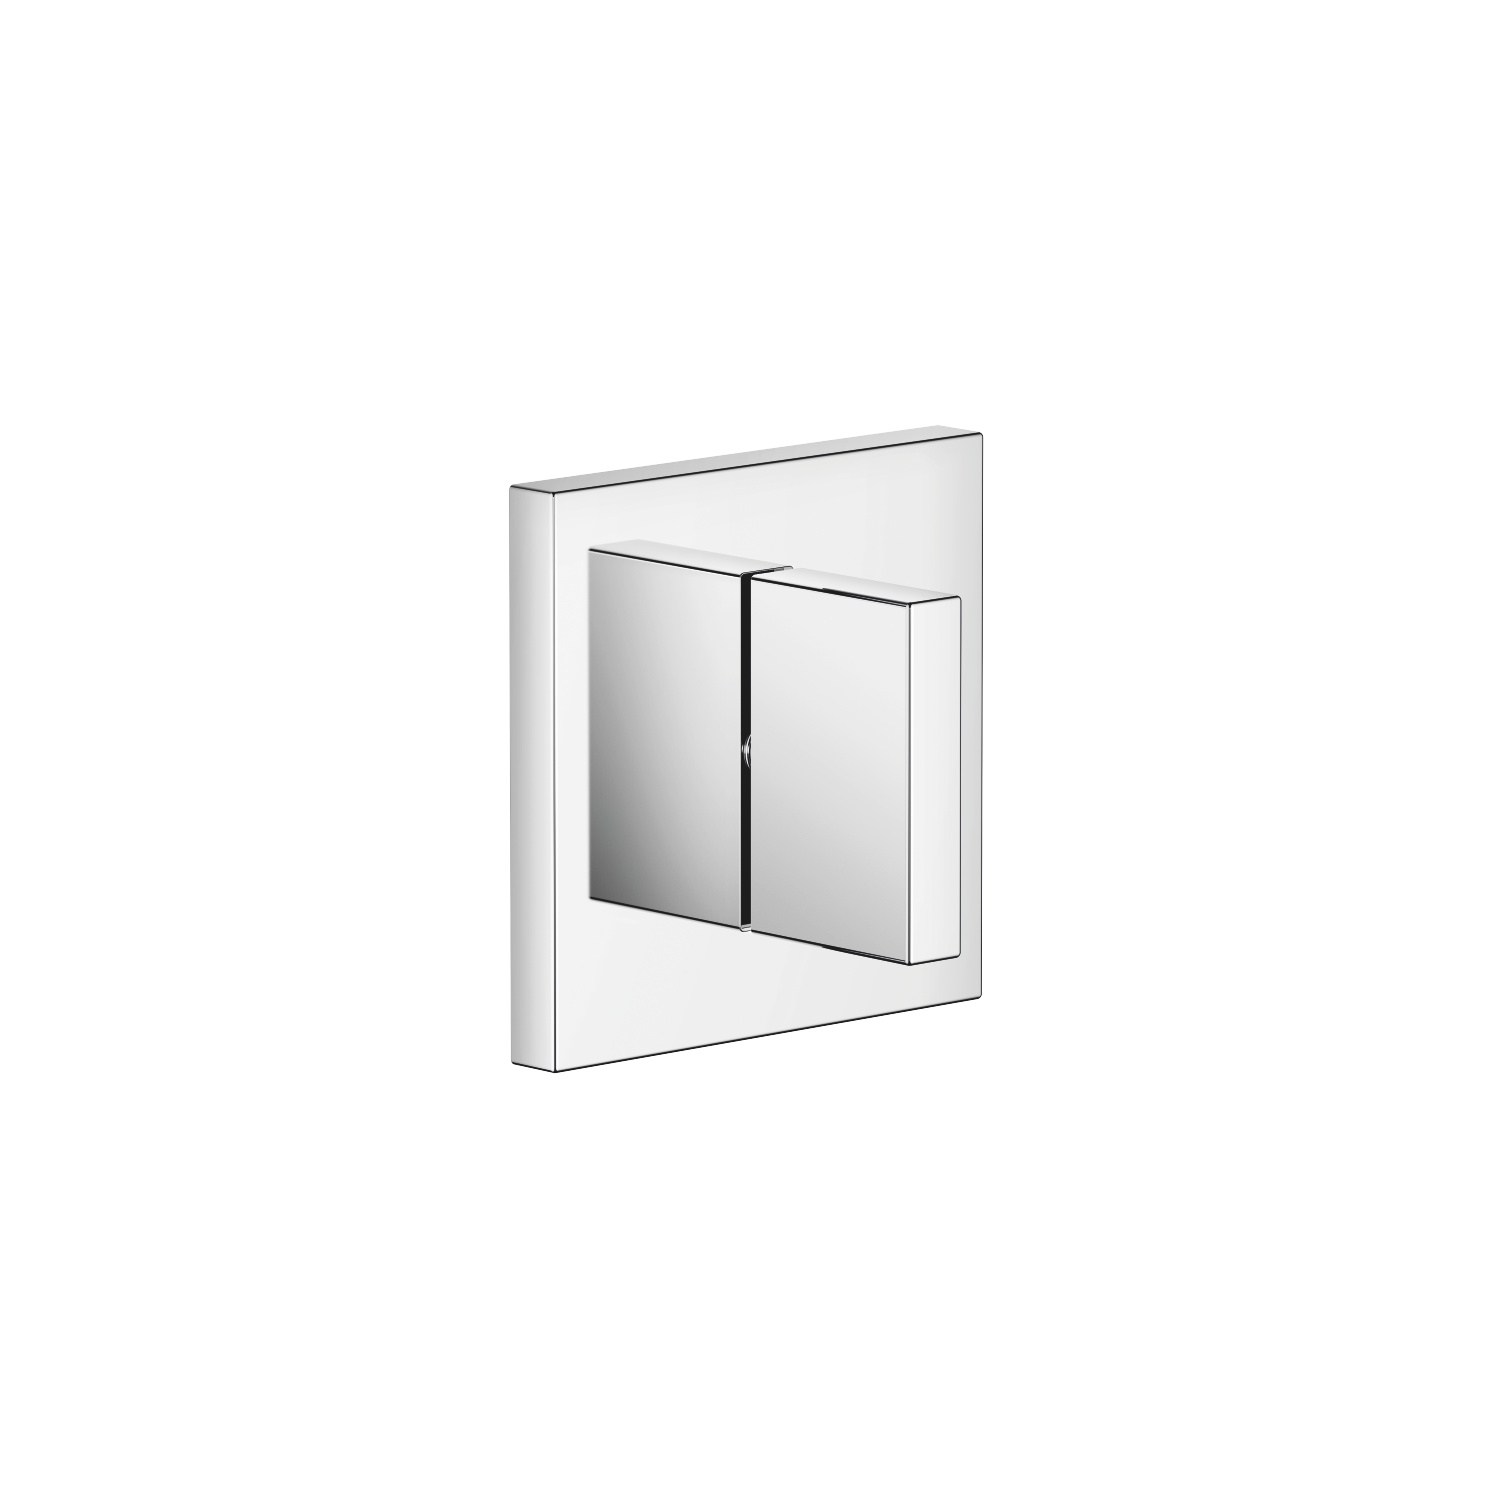 Concealed two- and three-way diverter - polished chrome - 36 104 782-00